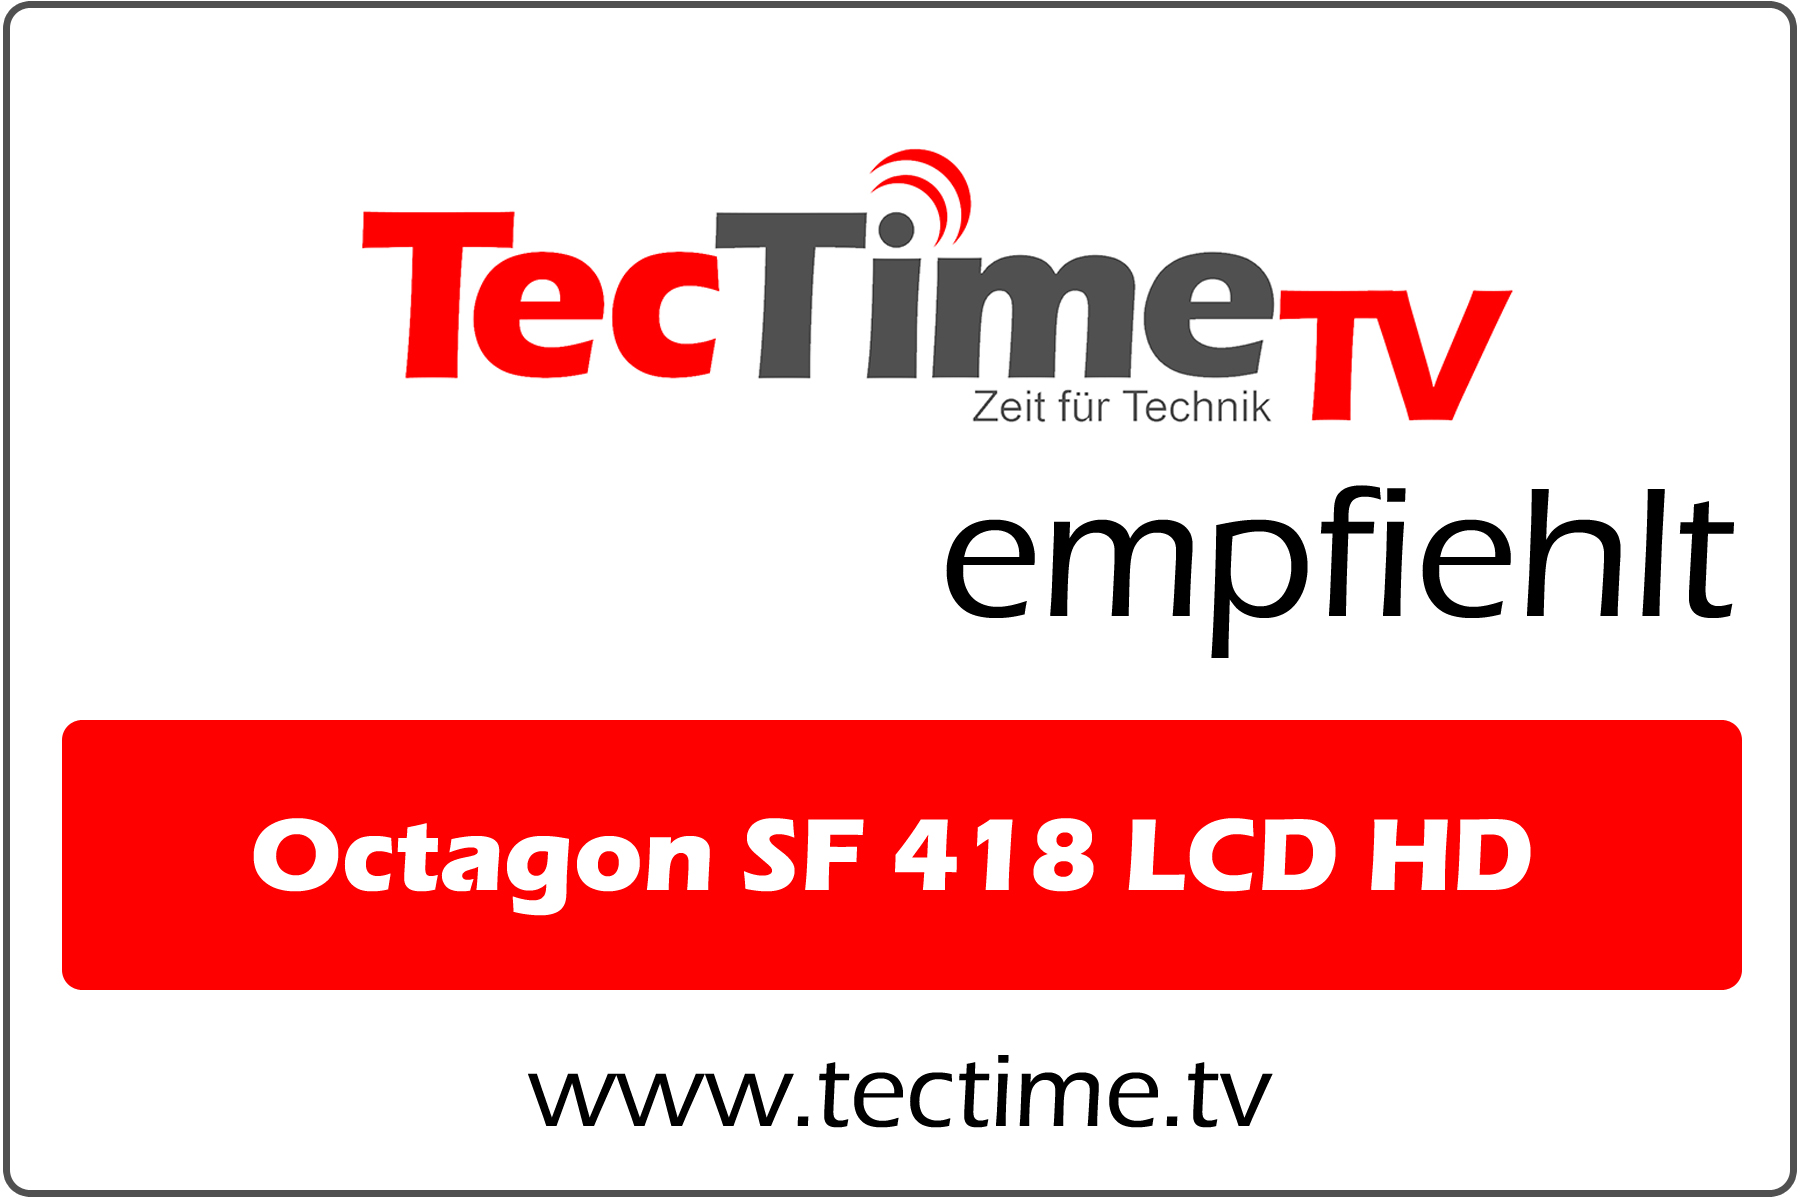 TecTime TV-EmpfehlungSF 418 LCD HD